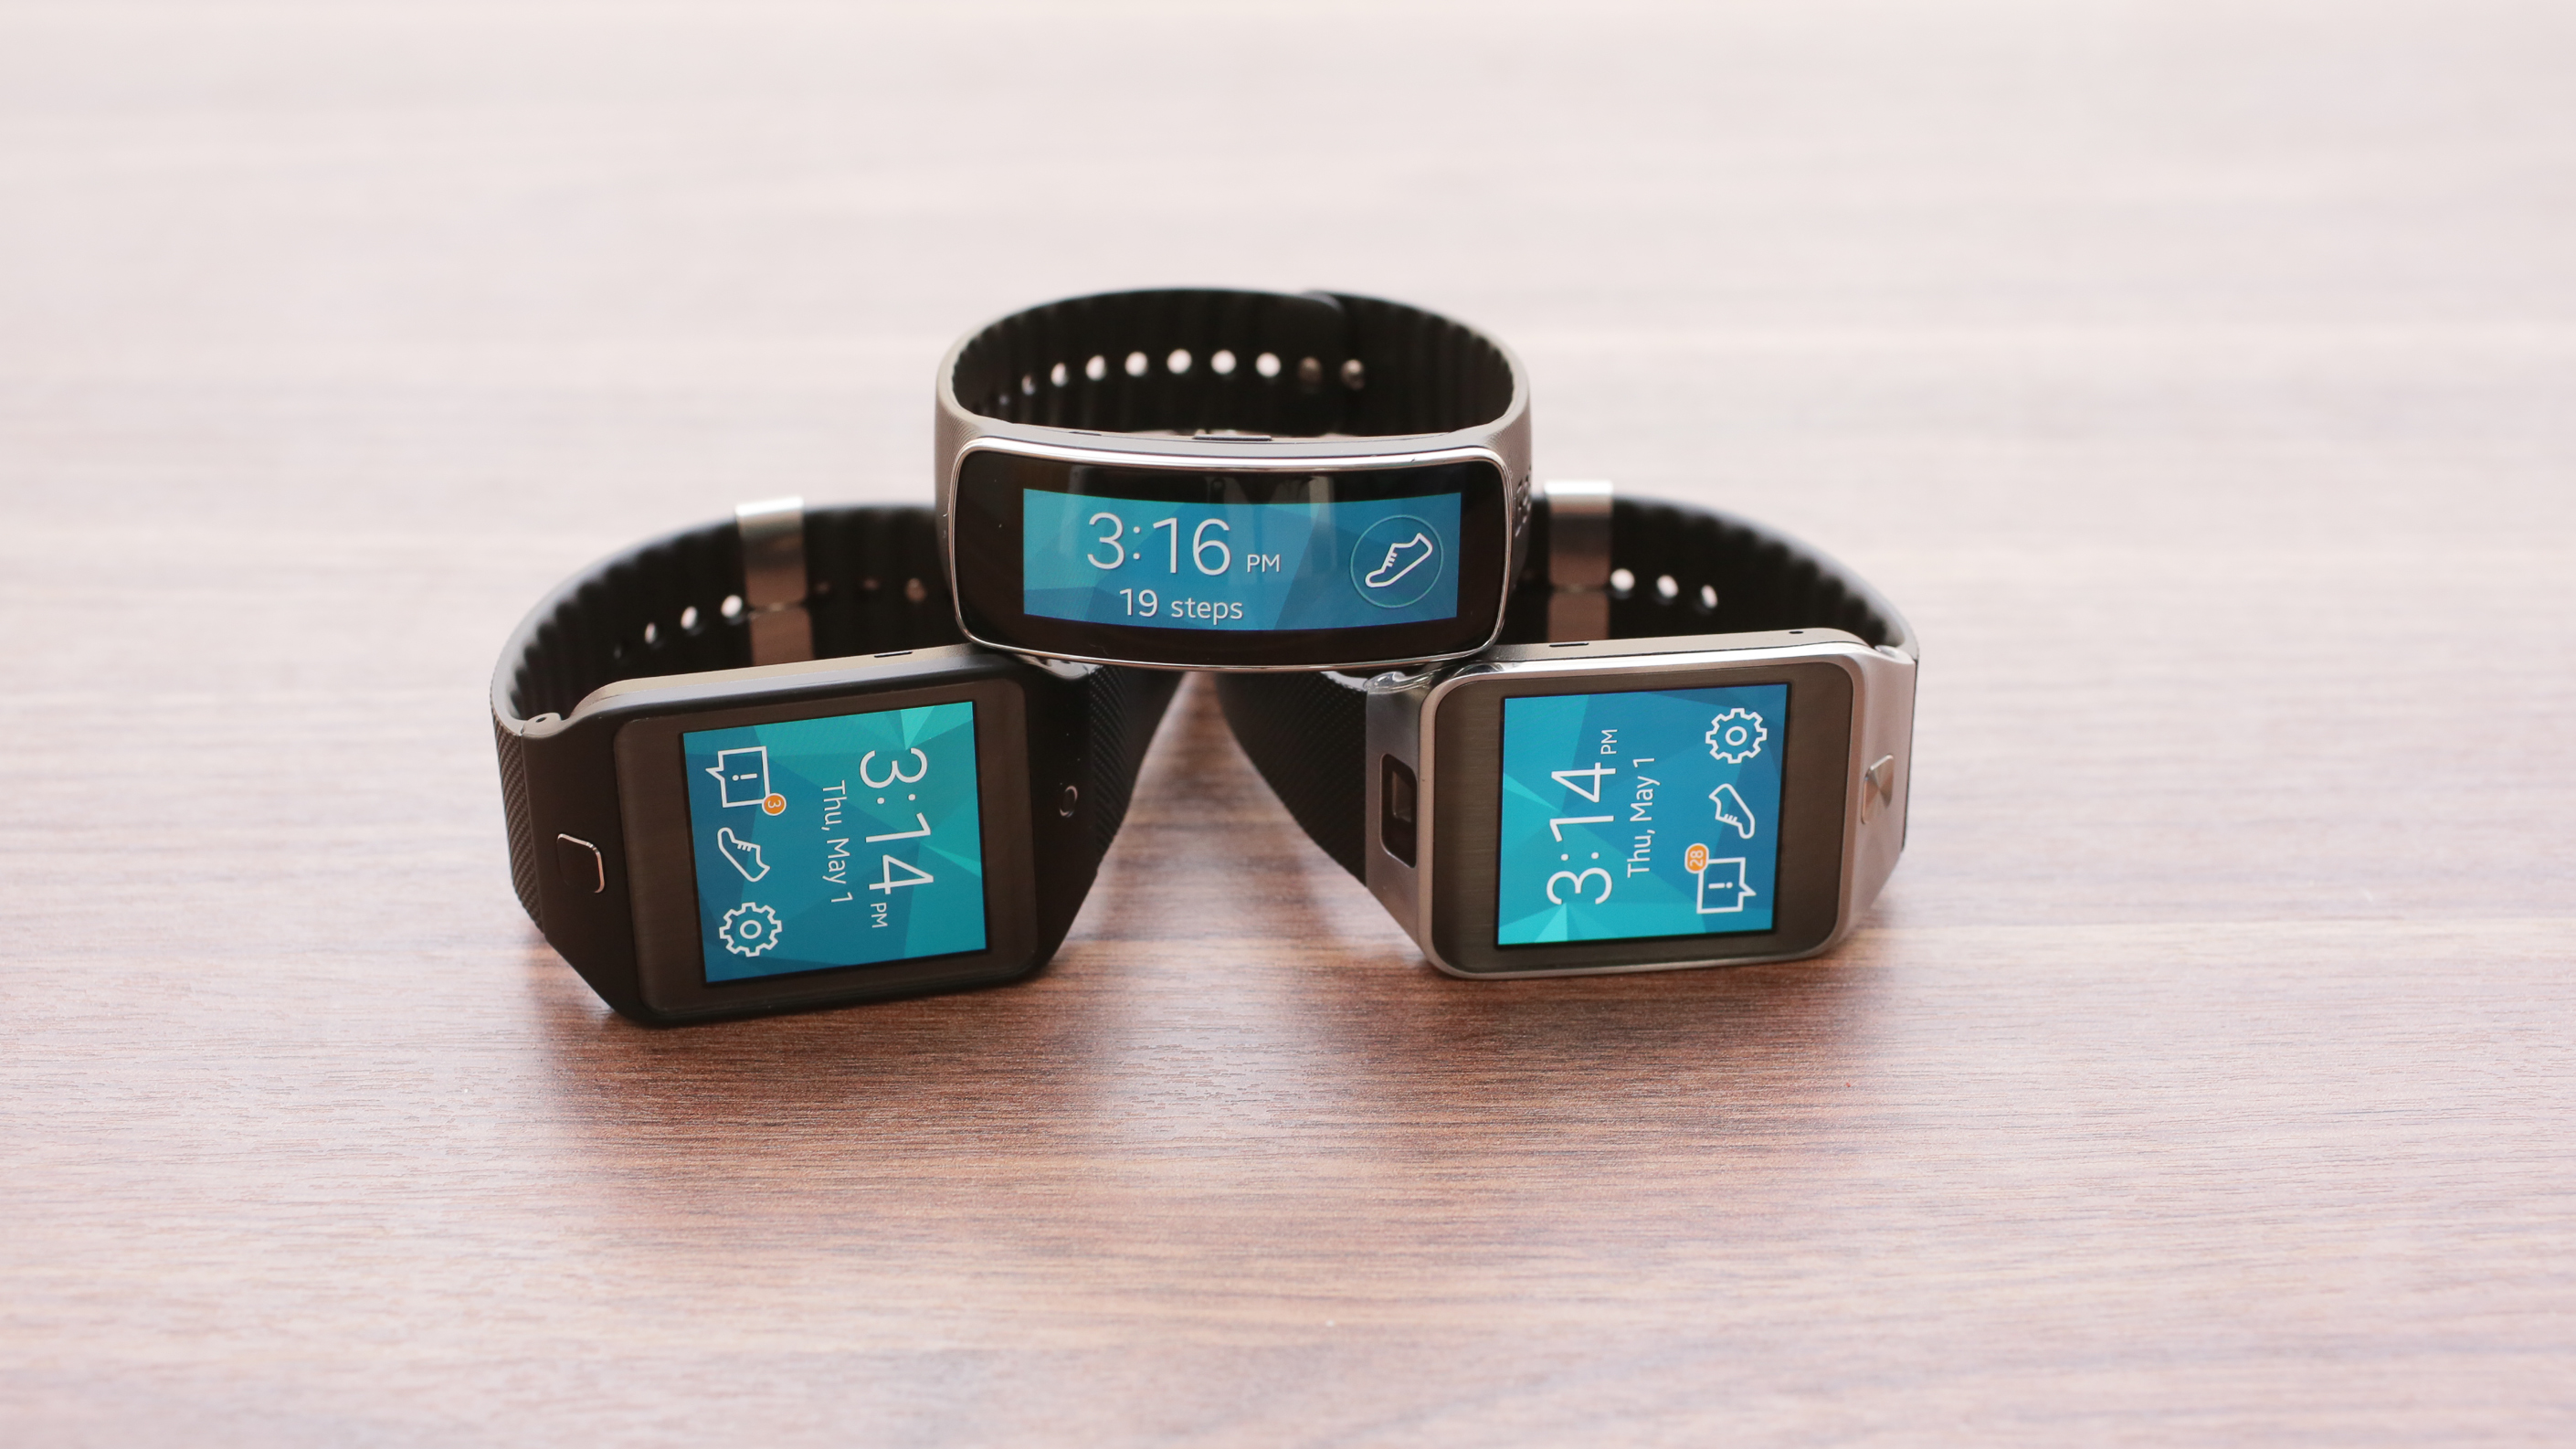 samsung-gear-2-product-photos-026.jpg